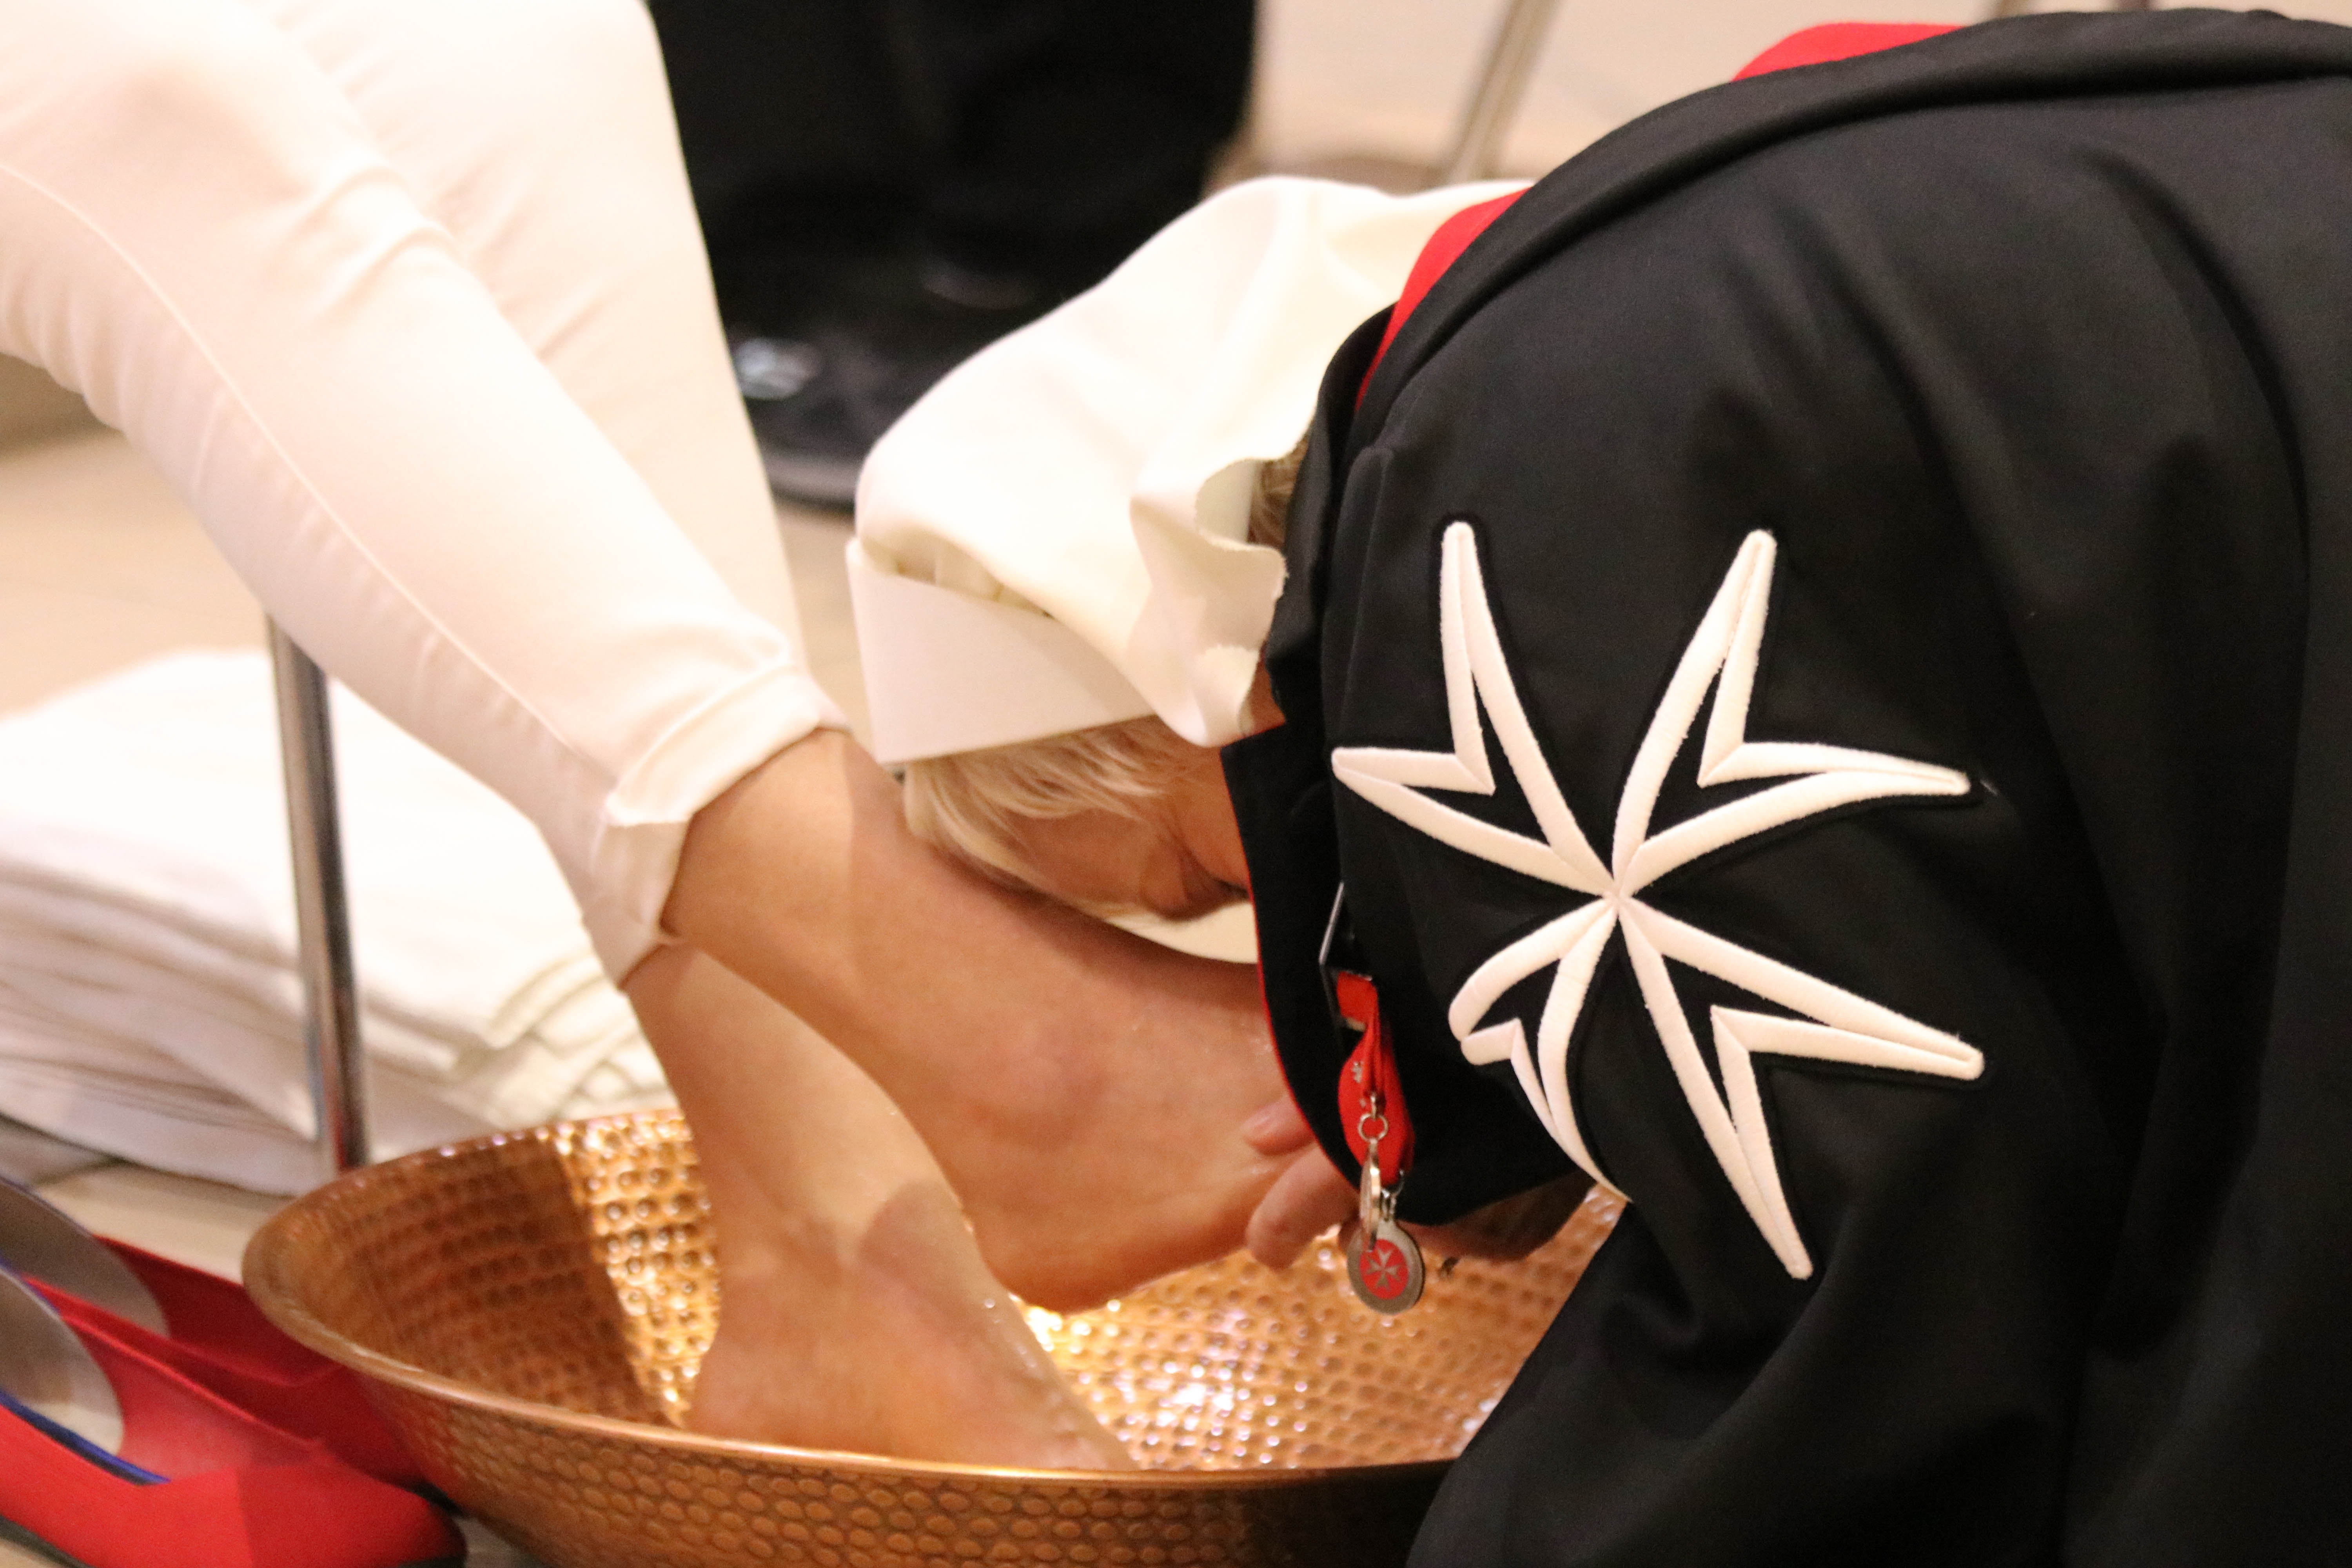 A dame of Malta washes the feet of a malade in Lourdes. courtesy